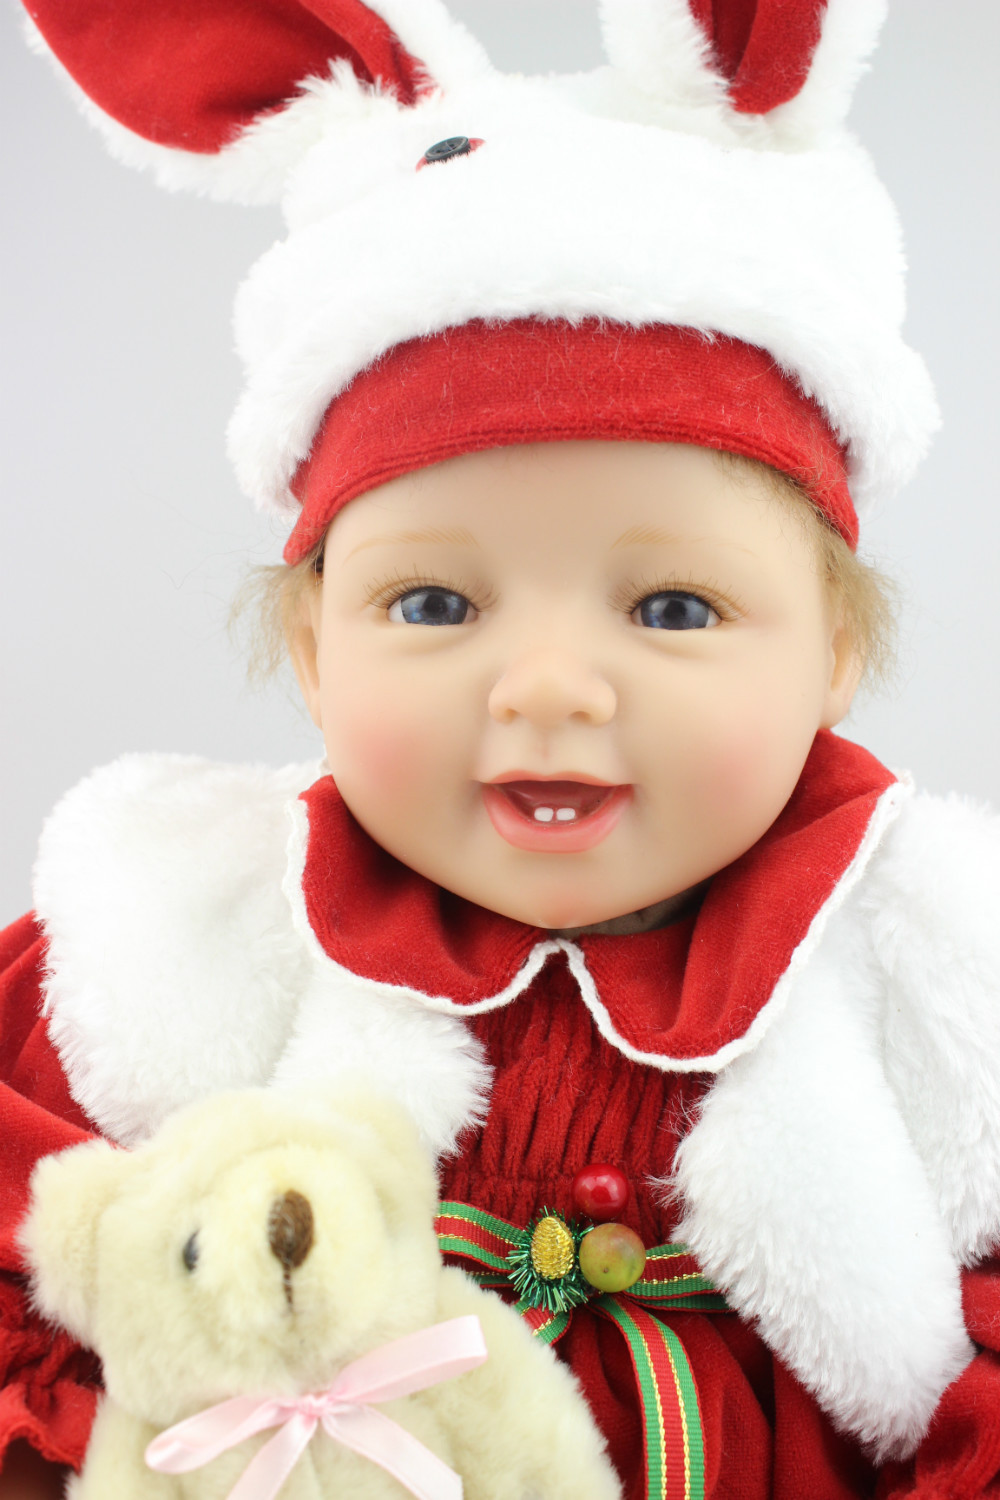 2015 NEW design hot sale lifelike reborn baby doll wholesale baby dolls fashion doll Christmas gift цена